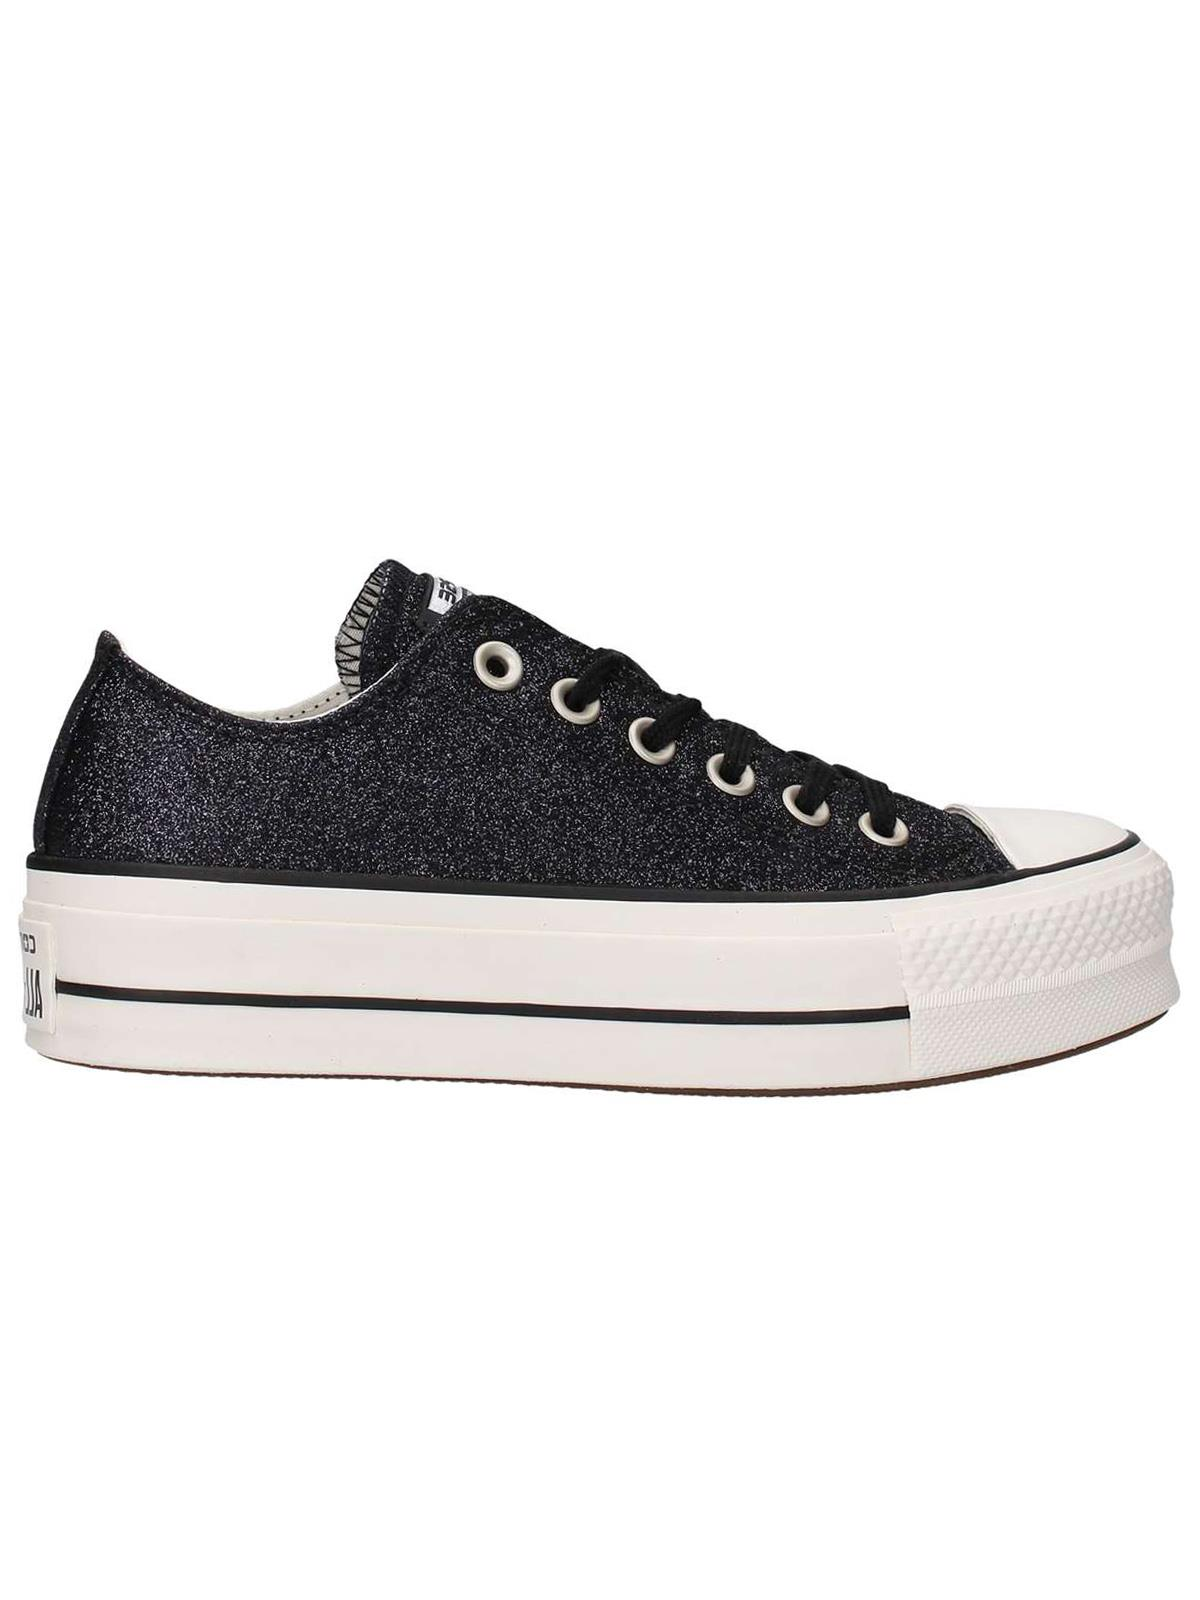 Converse All Star Glitter Lift 561040C Ox W 561040C Lift bf6d02